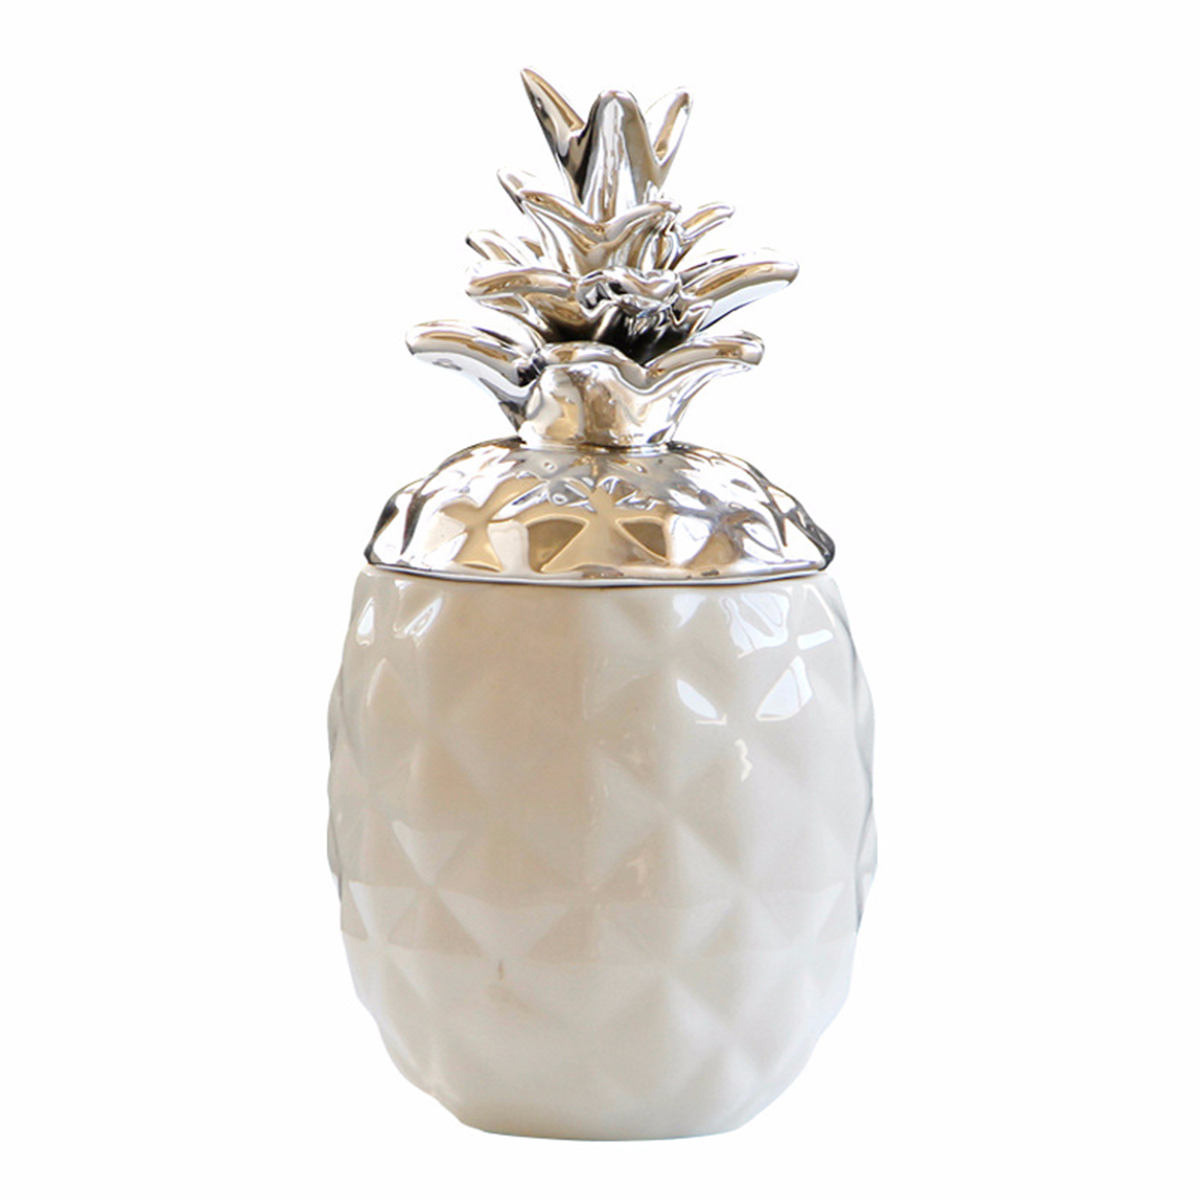 Empty Jar Ceramic Chic Pineapple Tea Coffee Sugar Jars Storage Canisters Home Decor